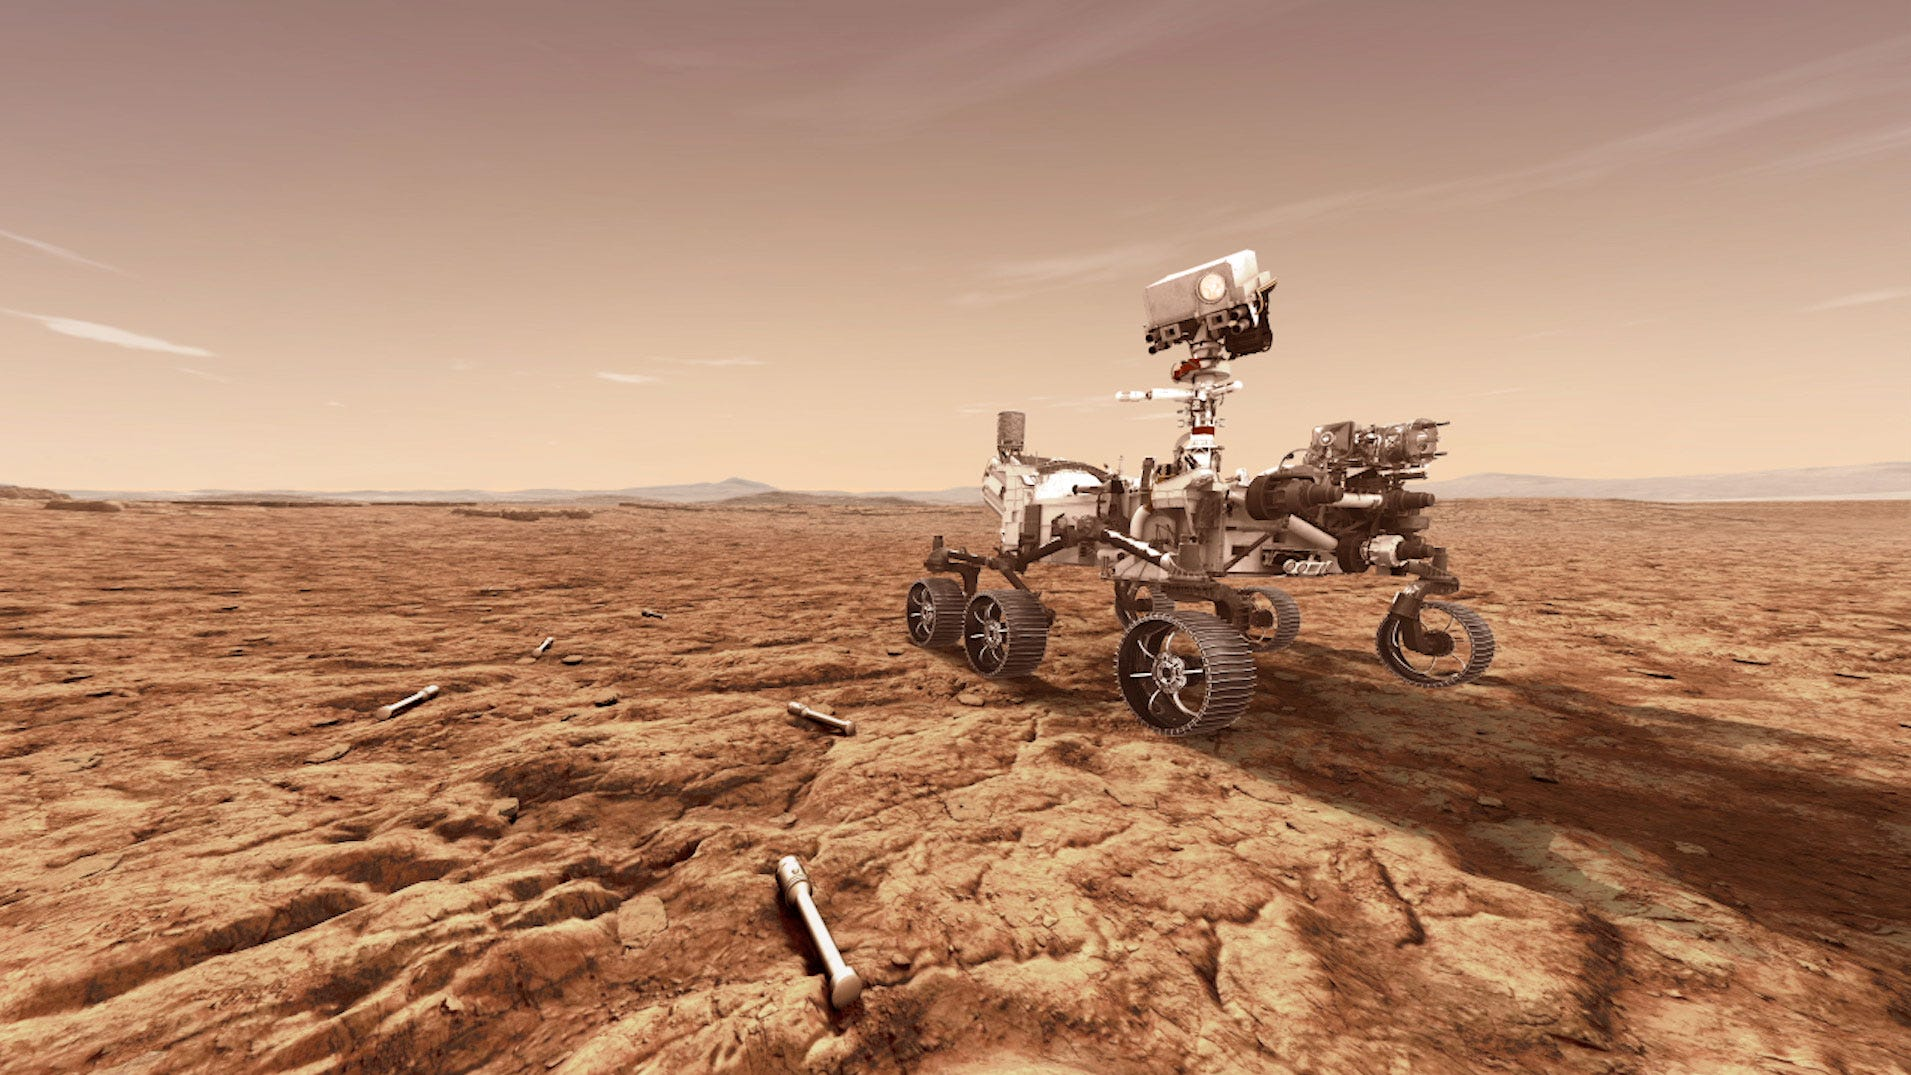 NASA's Mars Perseverance rover will store rock and